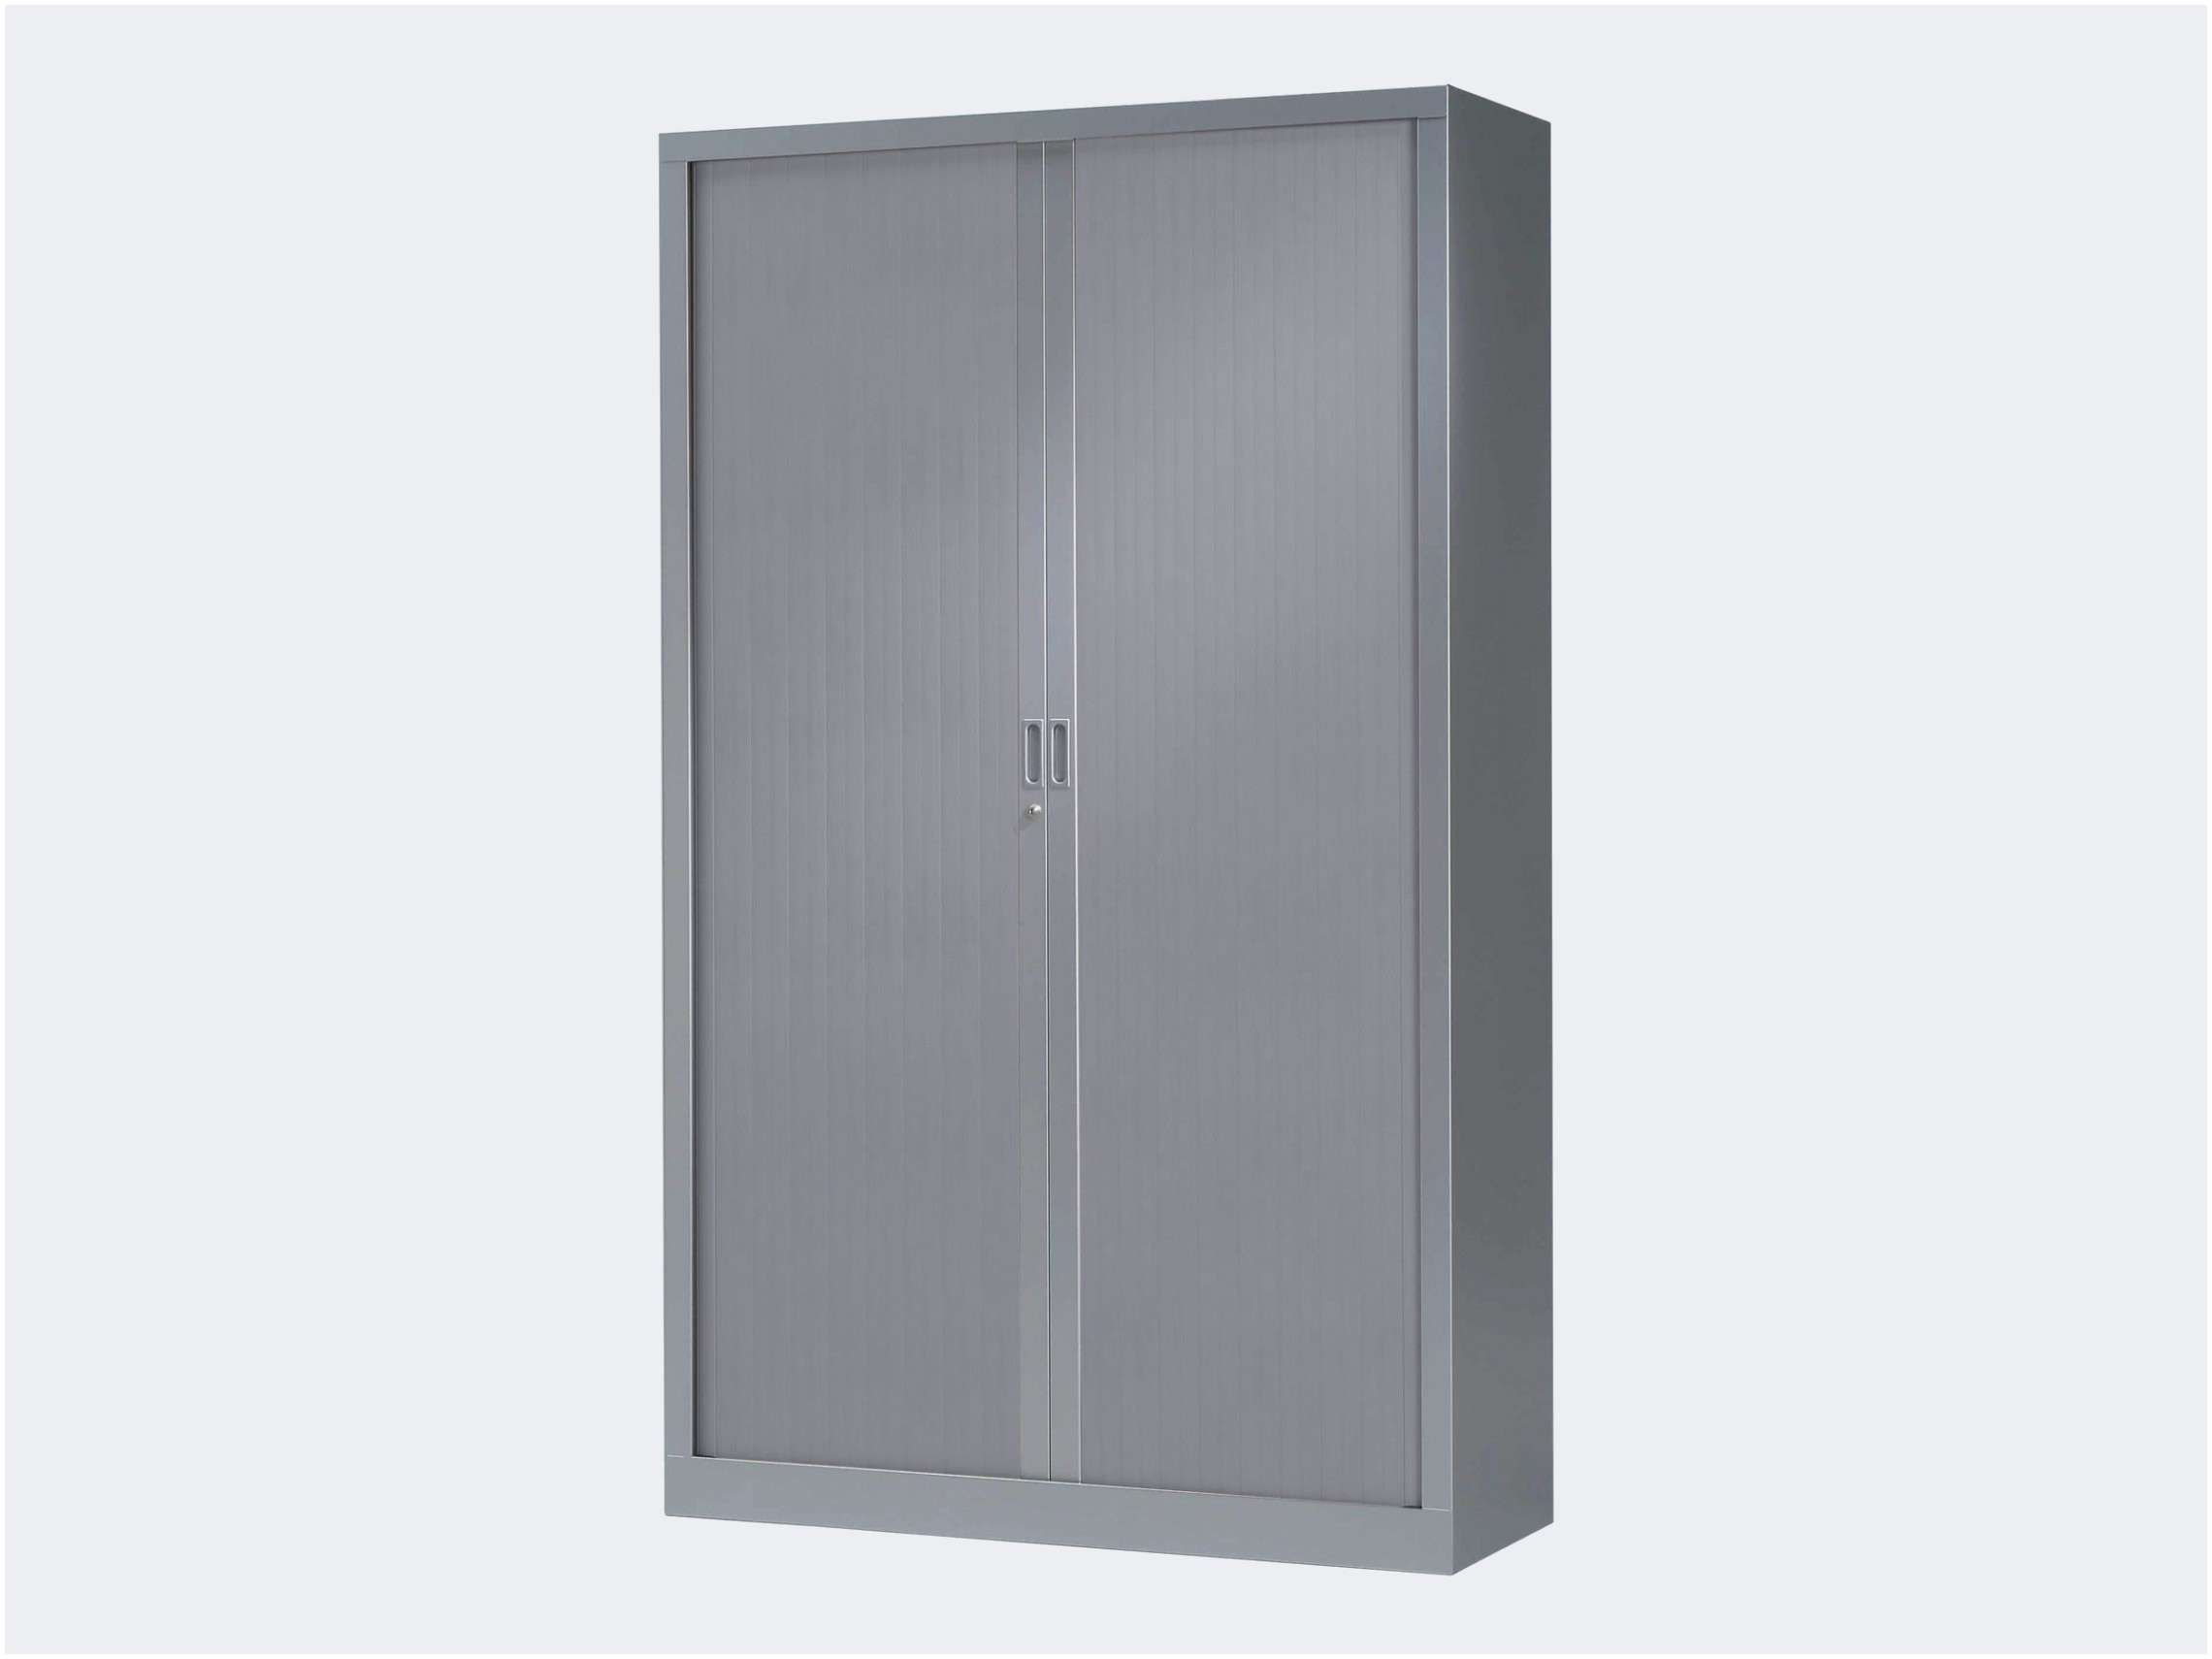 Armoire Metallique D Occasion Armoire Metallique D Occasion Armoire Metallique D Occasion En Belgique 75 Annonce Tall Cabinet Storage Storage Storage Cabinet